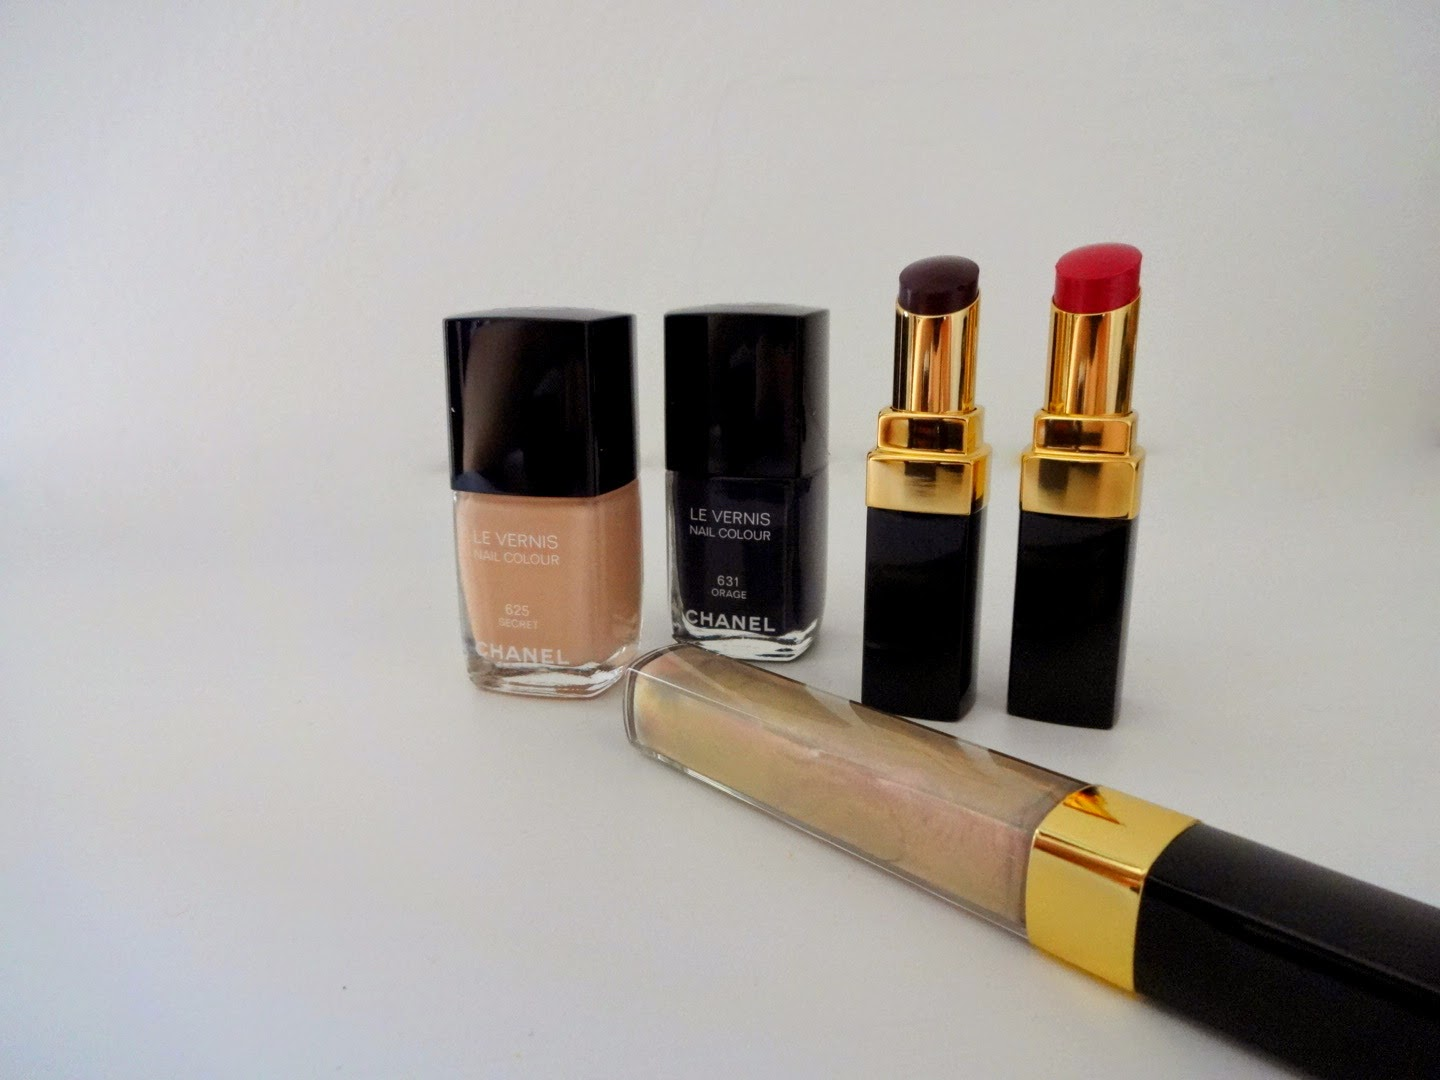 chanel make up autunno 2014, chanel etats poetiques collection, le vernis, rouge coco shine, levres scintillantes